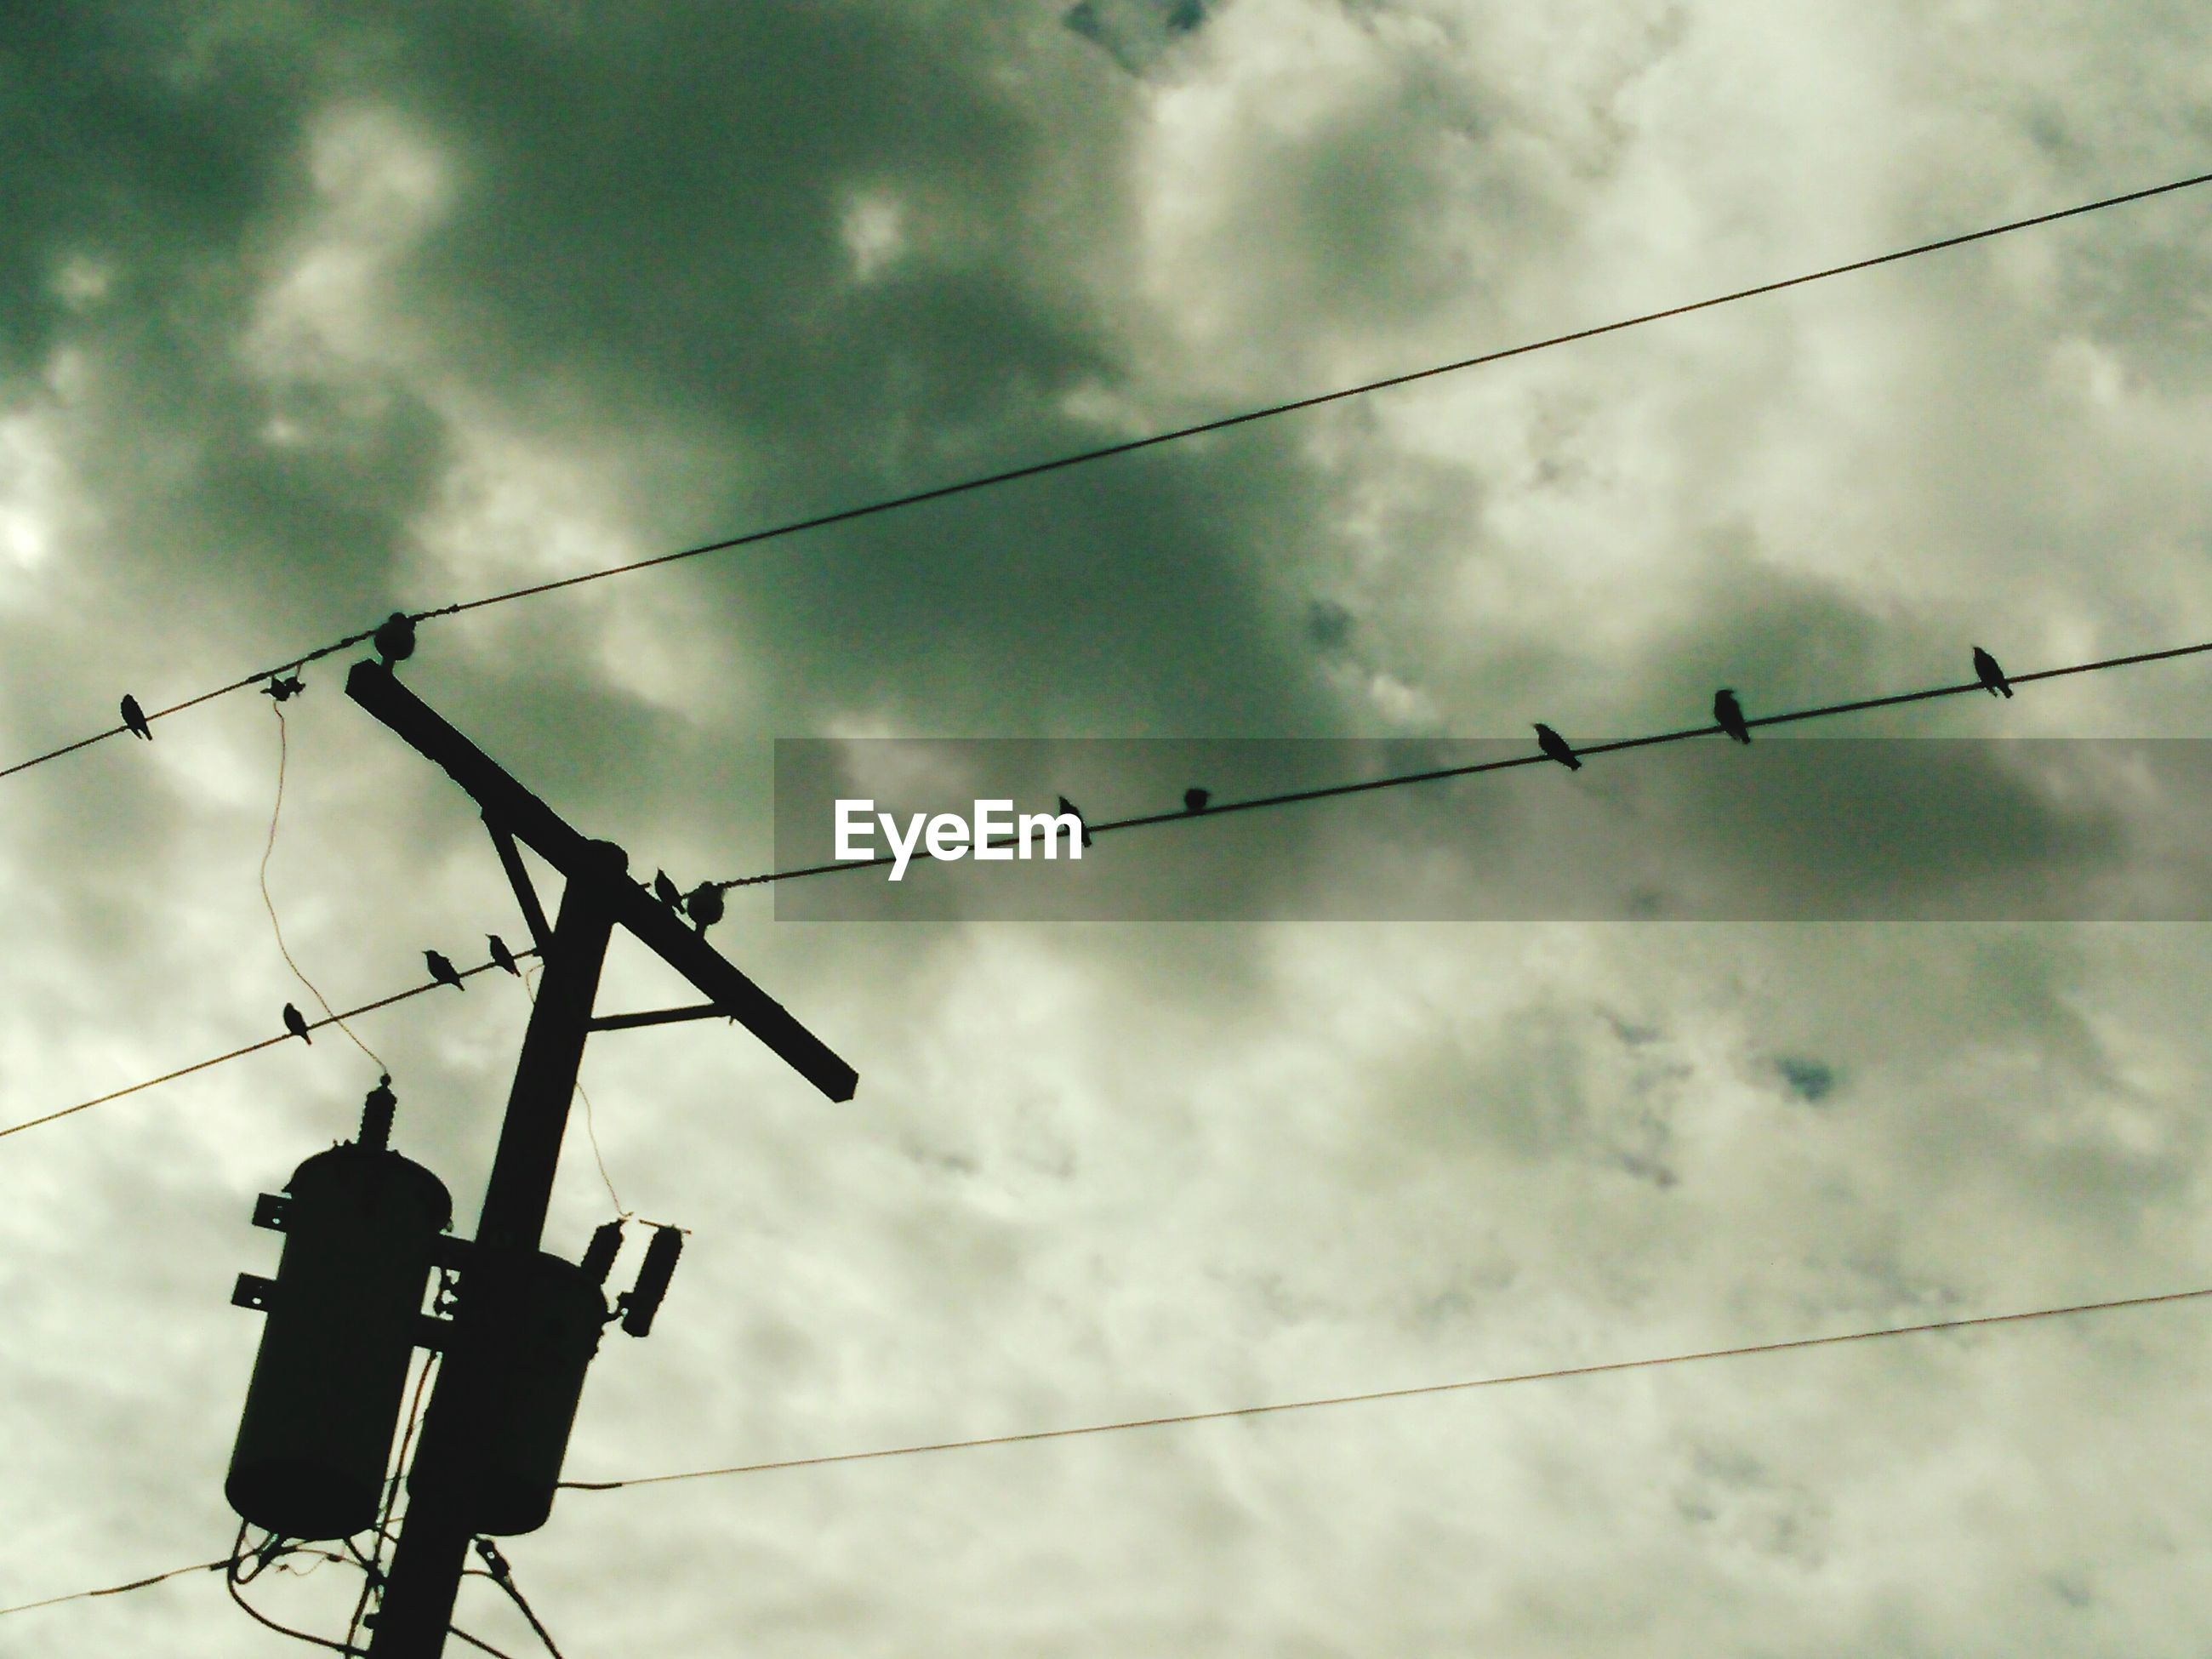 Low angle view of bird perching on silhouette electricity pylon against cloudy sky